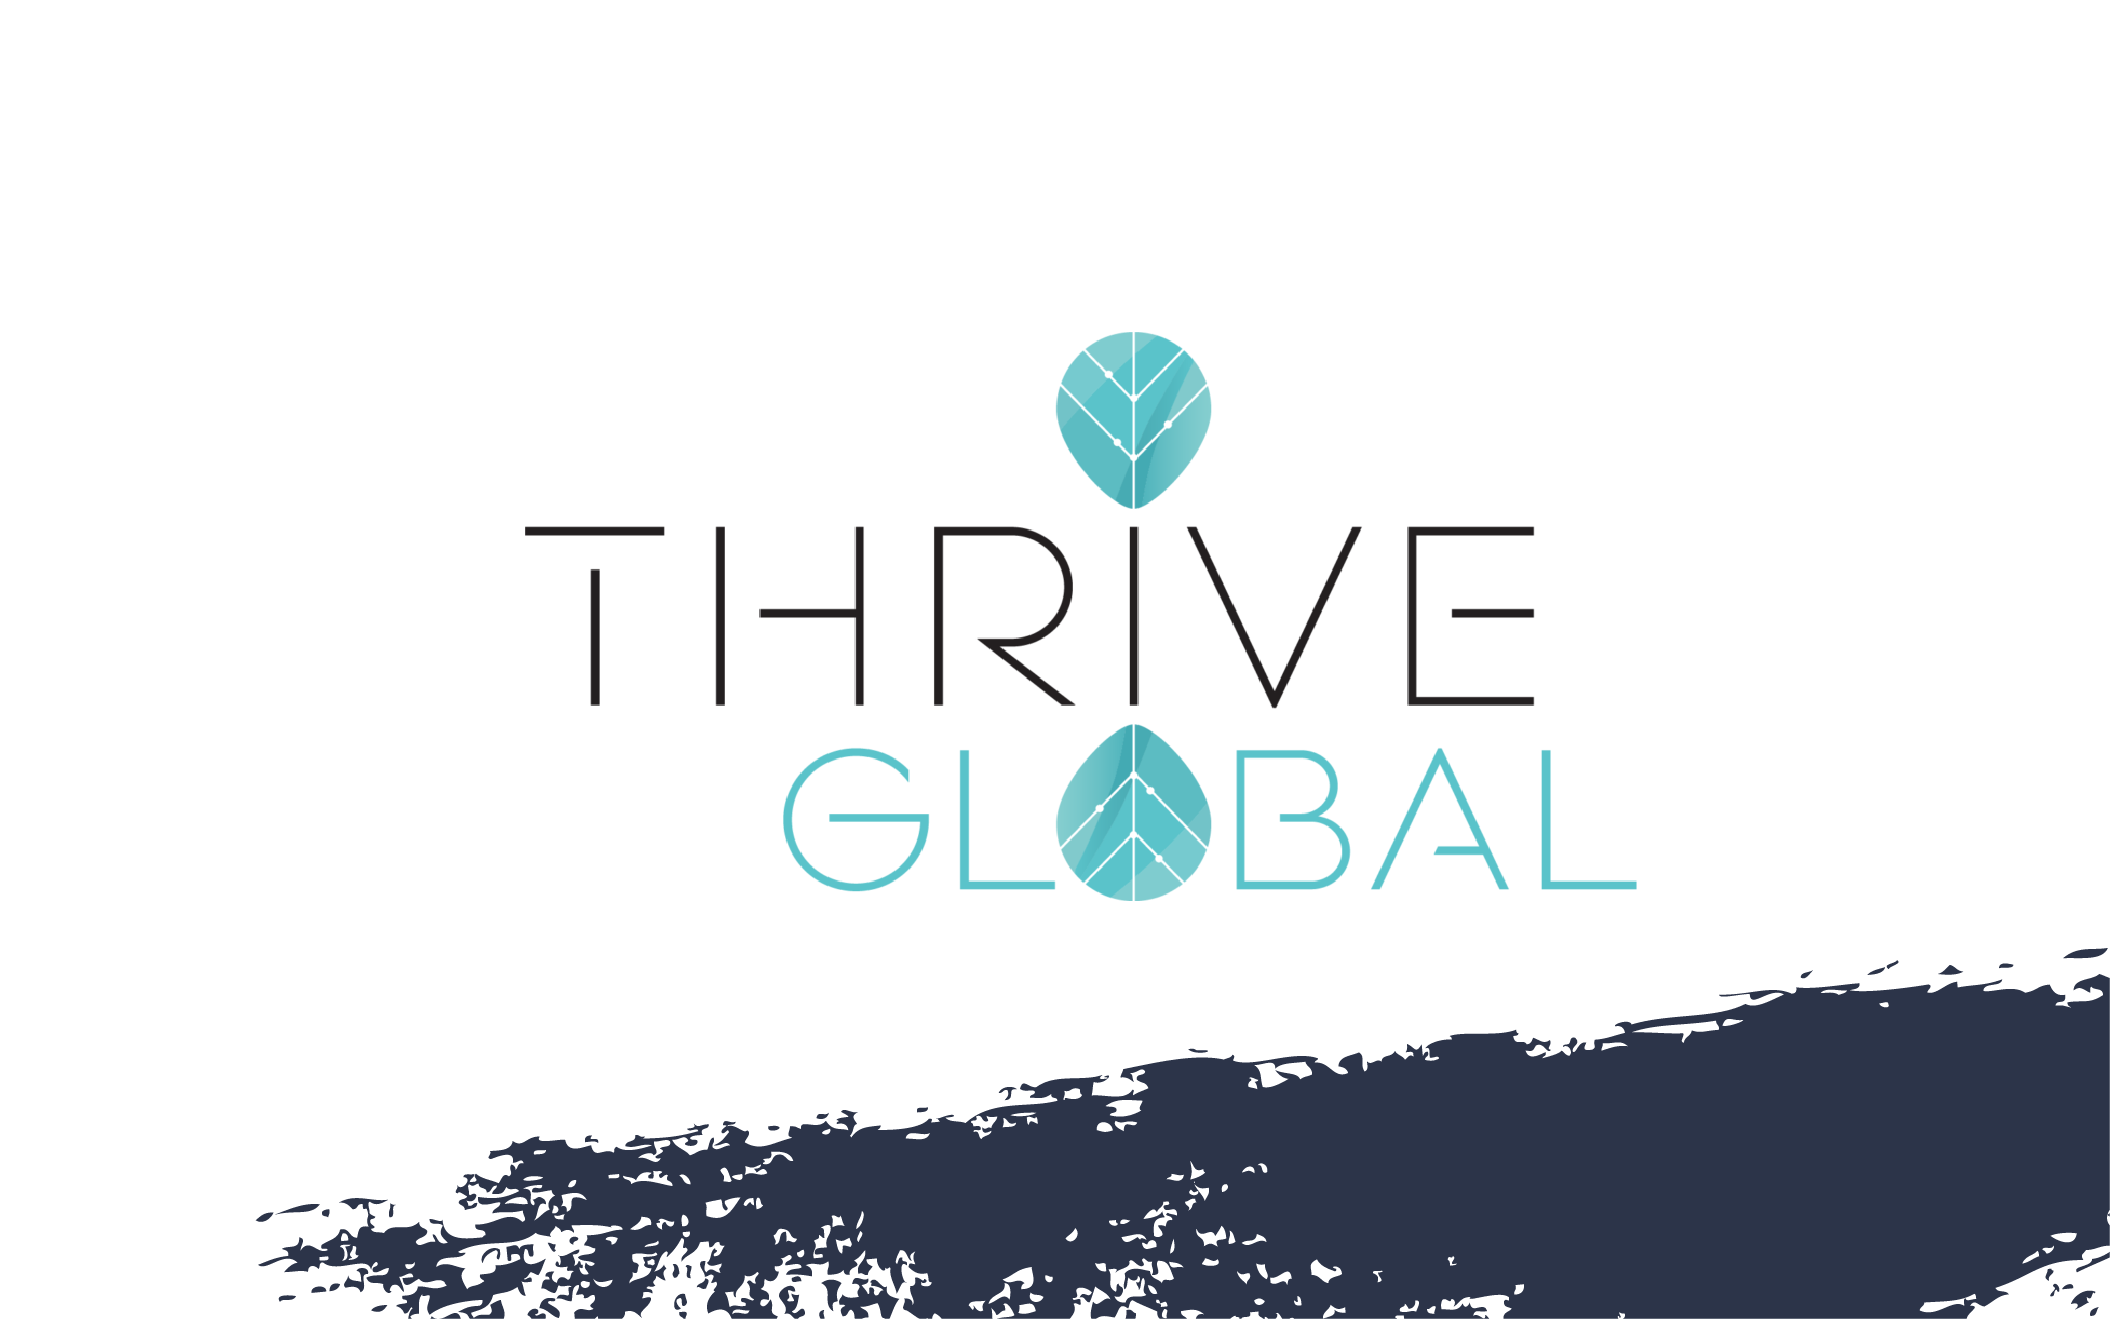 Harvard T.H. Chan School of Public Health Collaborates with Thrive Global to Launch The Health and Wellness For All Program